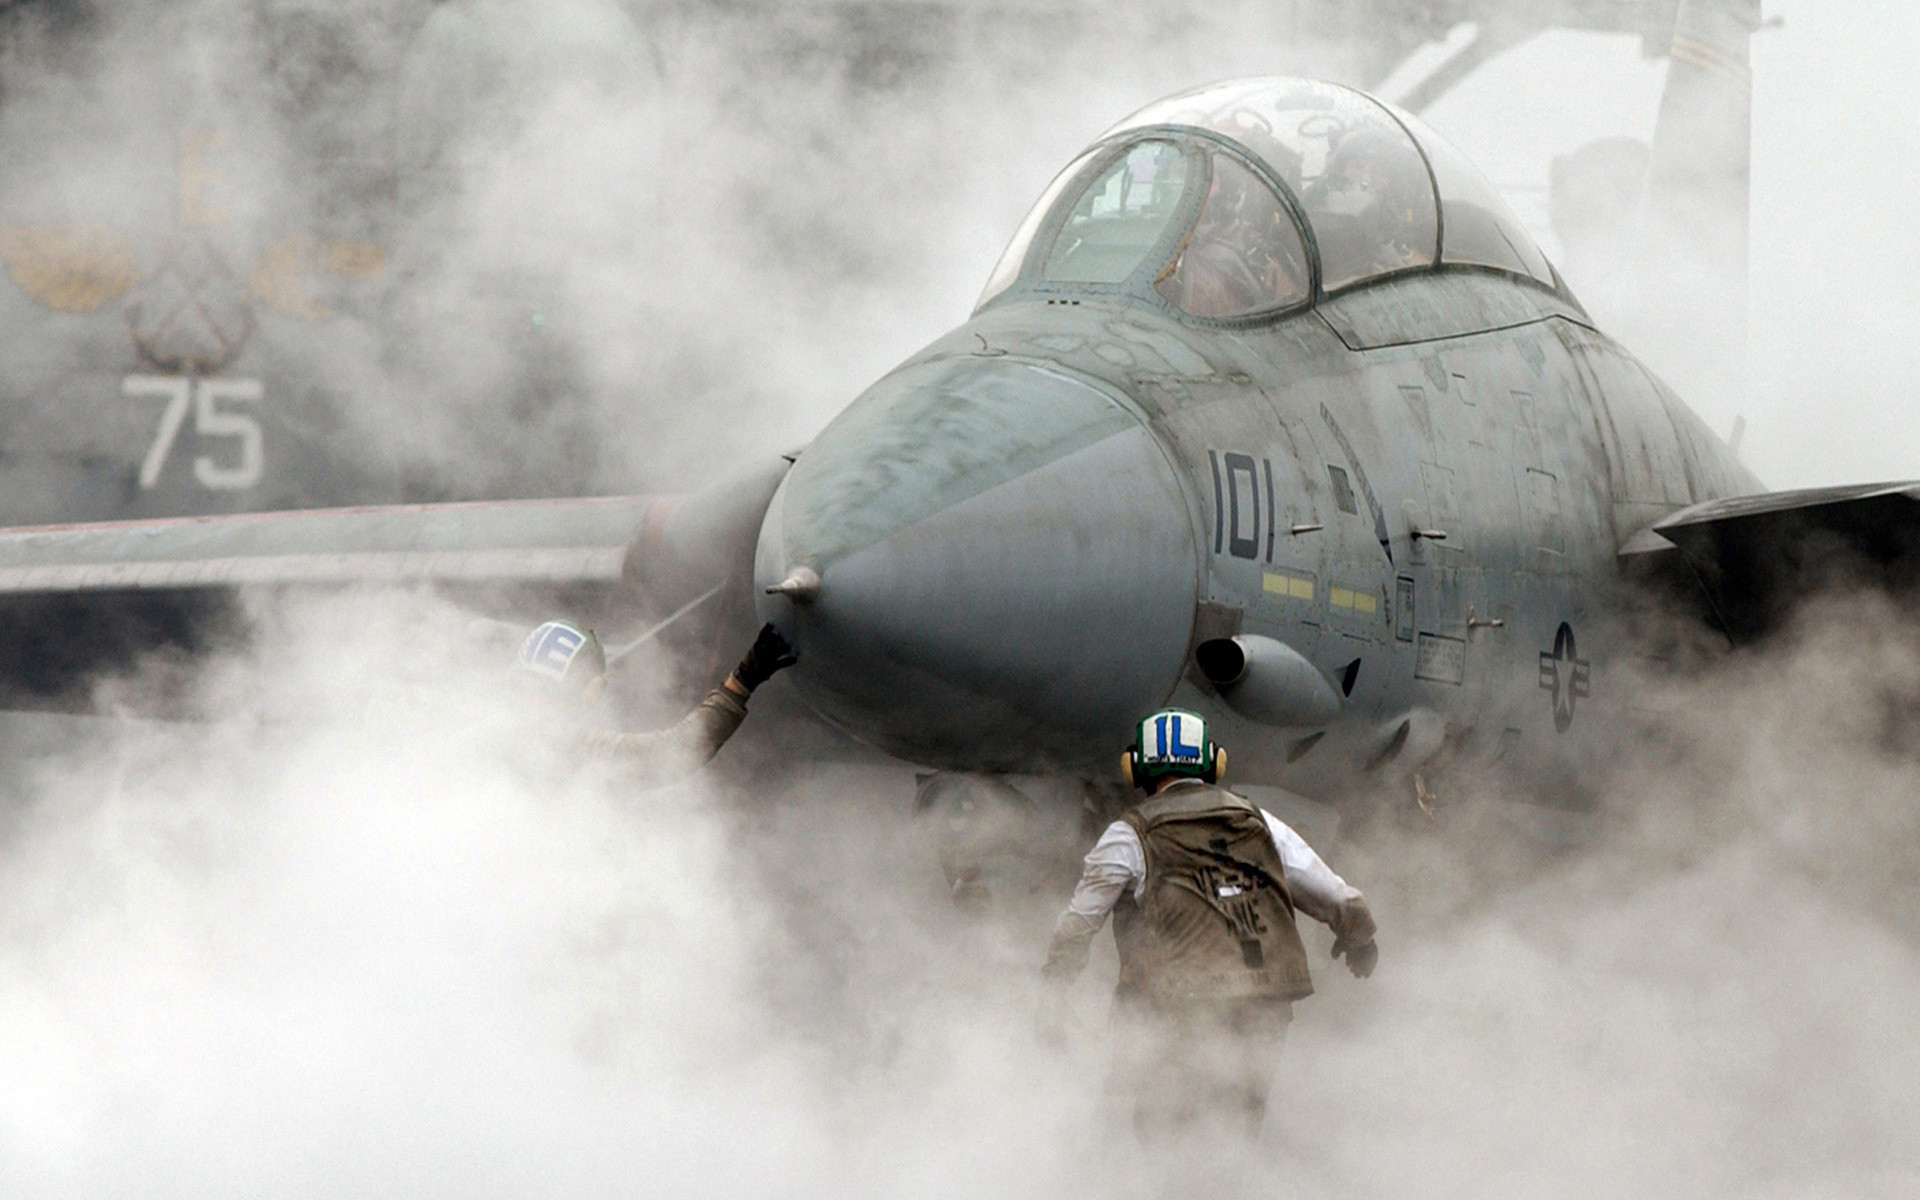 1920x1200 wallpaper f 14 tomcat fighter aircraft plane smoke aircraft